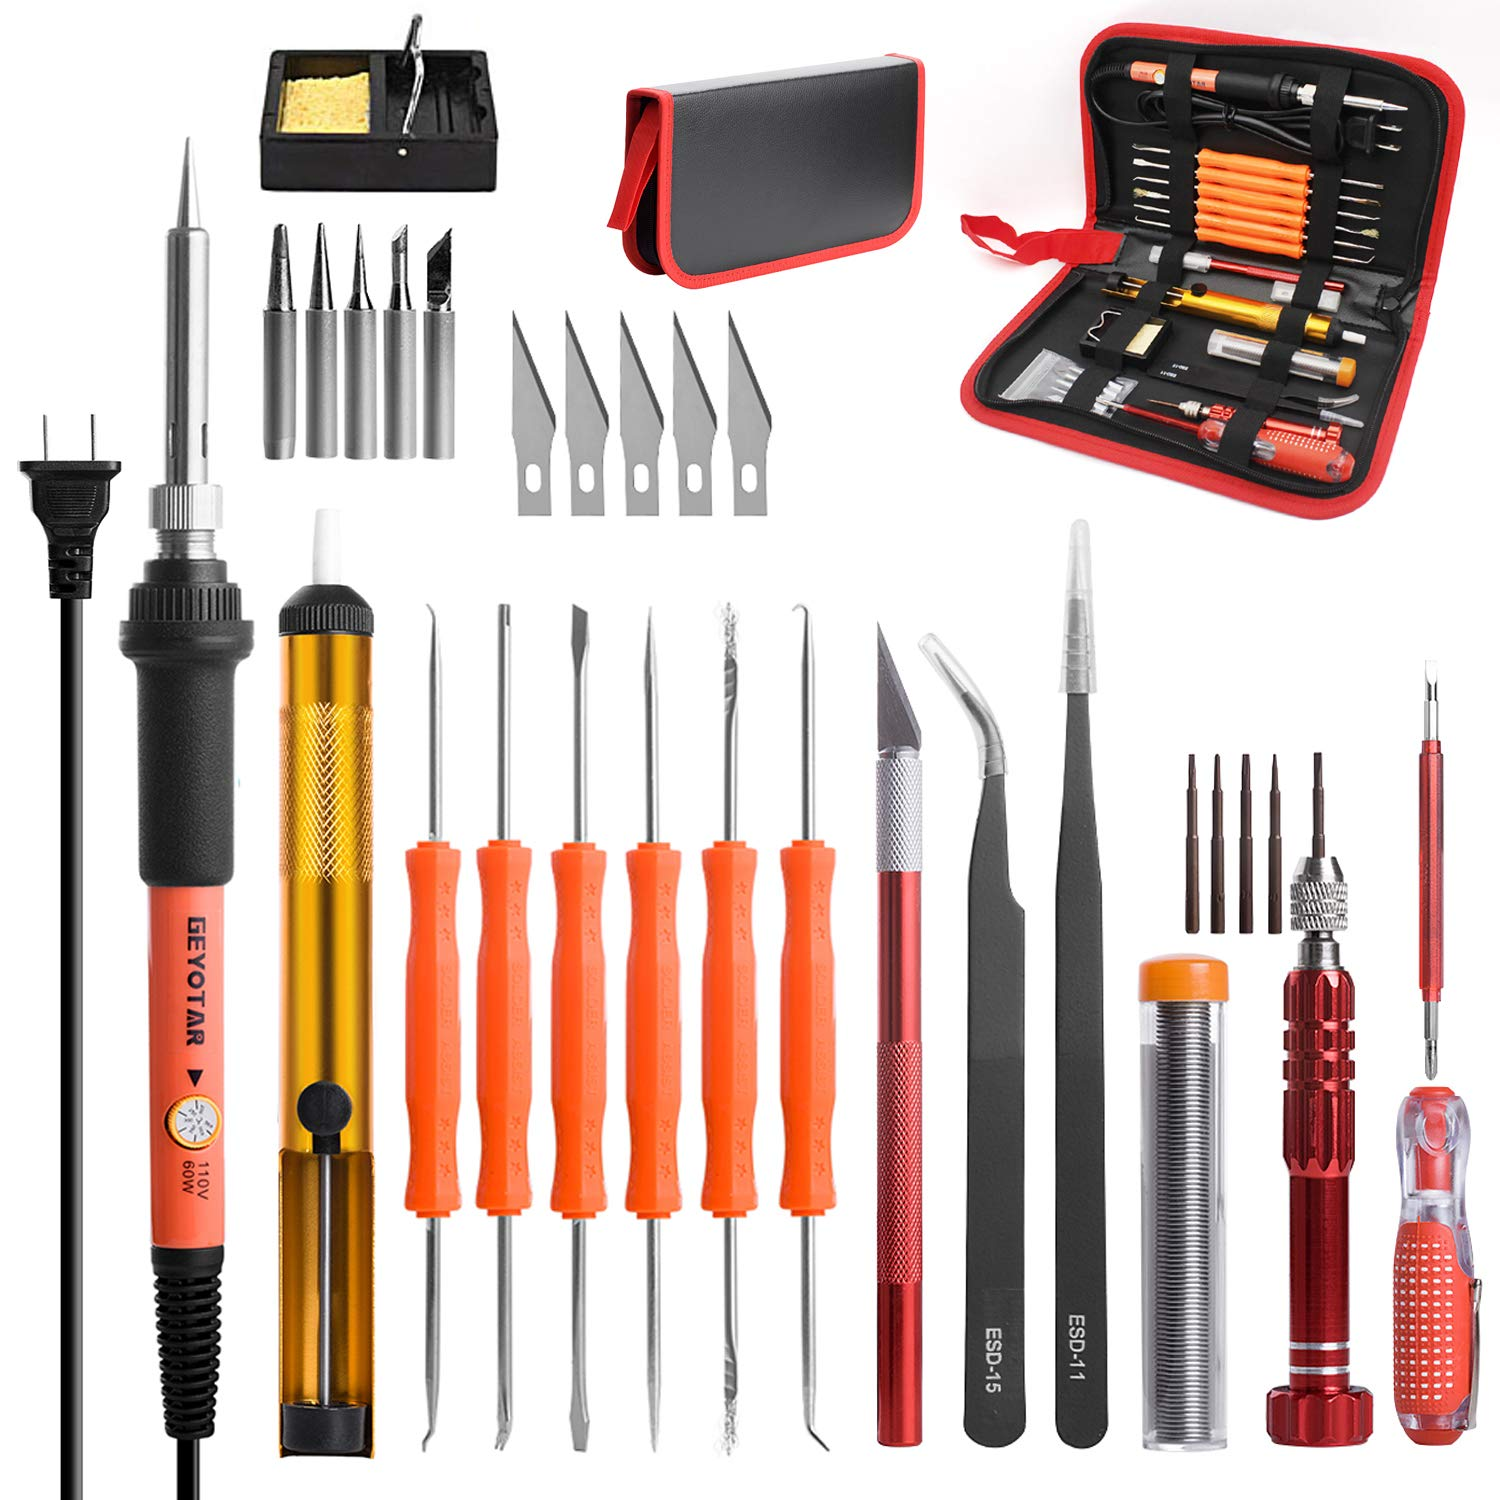 GEYOTAR Electric Soldering Iron Kit 110V 60W Adjustable Temperature Welding Tool Hobby Knife tweezers Desoldering Pump iron stand 5pcs Tips with Tool Carry bag